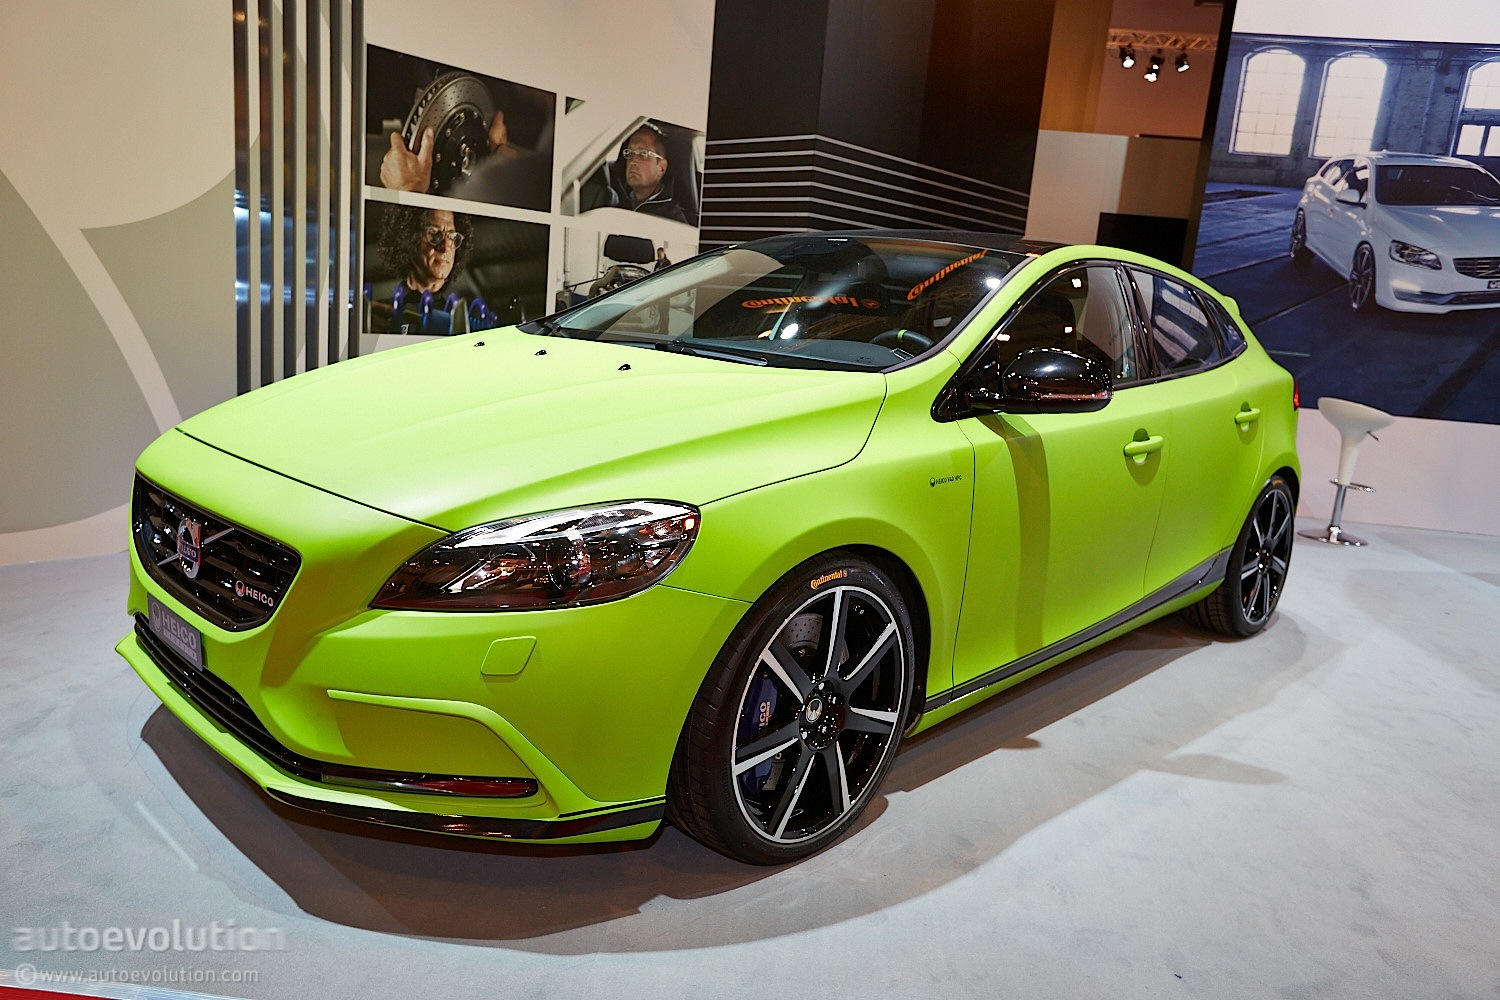 Volvo V40 T5 HPC Arrives at Essen 2013 [Live Photos] - autoevolution